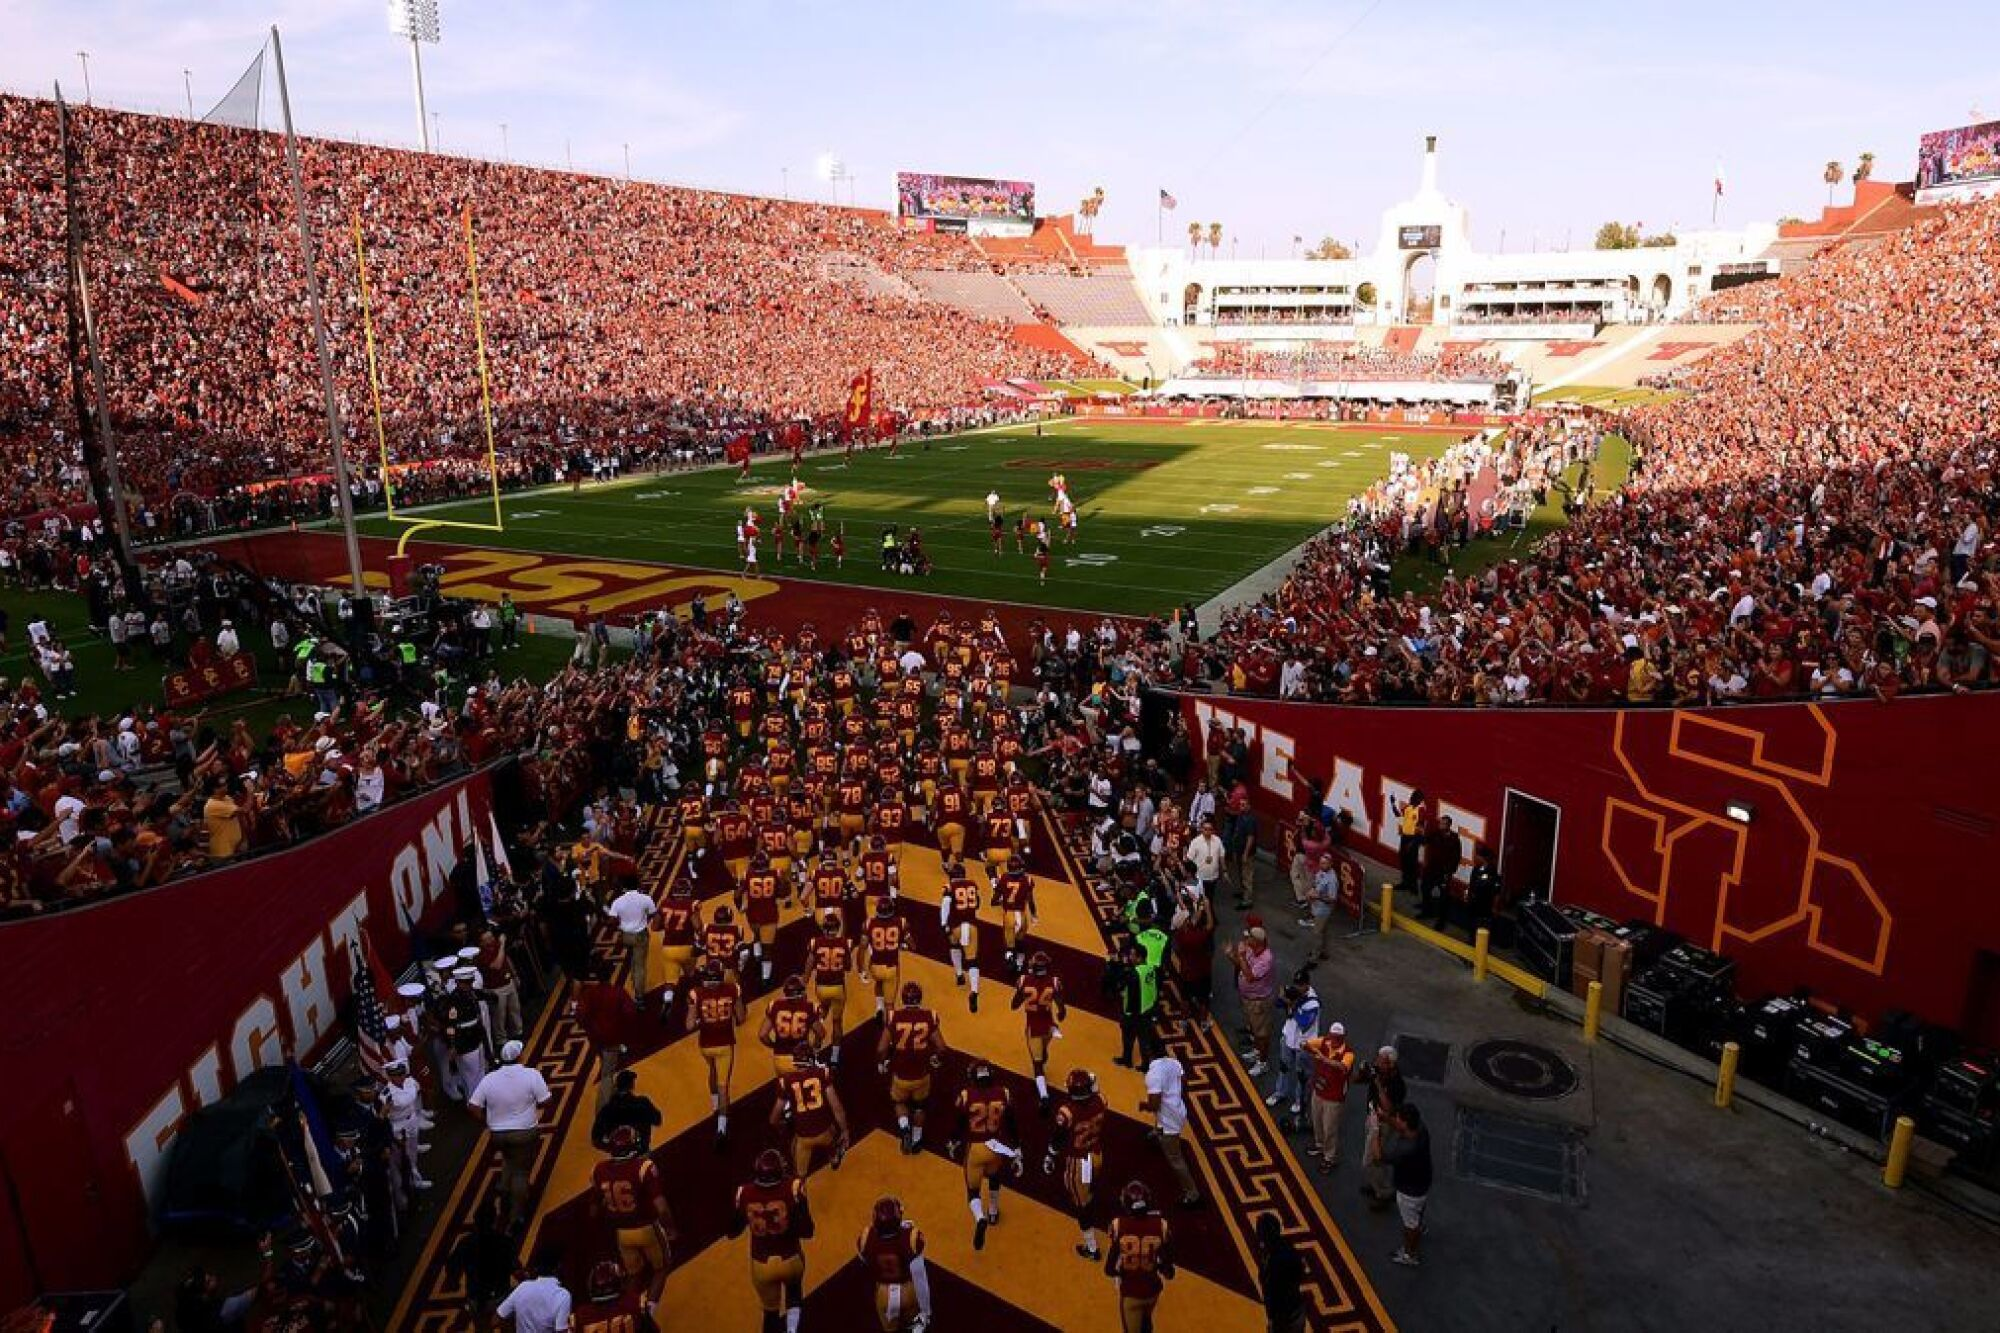 USC players take the field before a game against Fresno State.